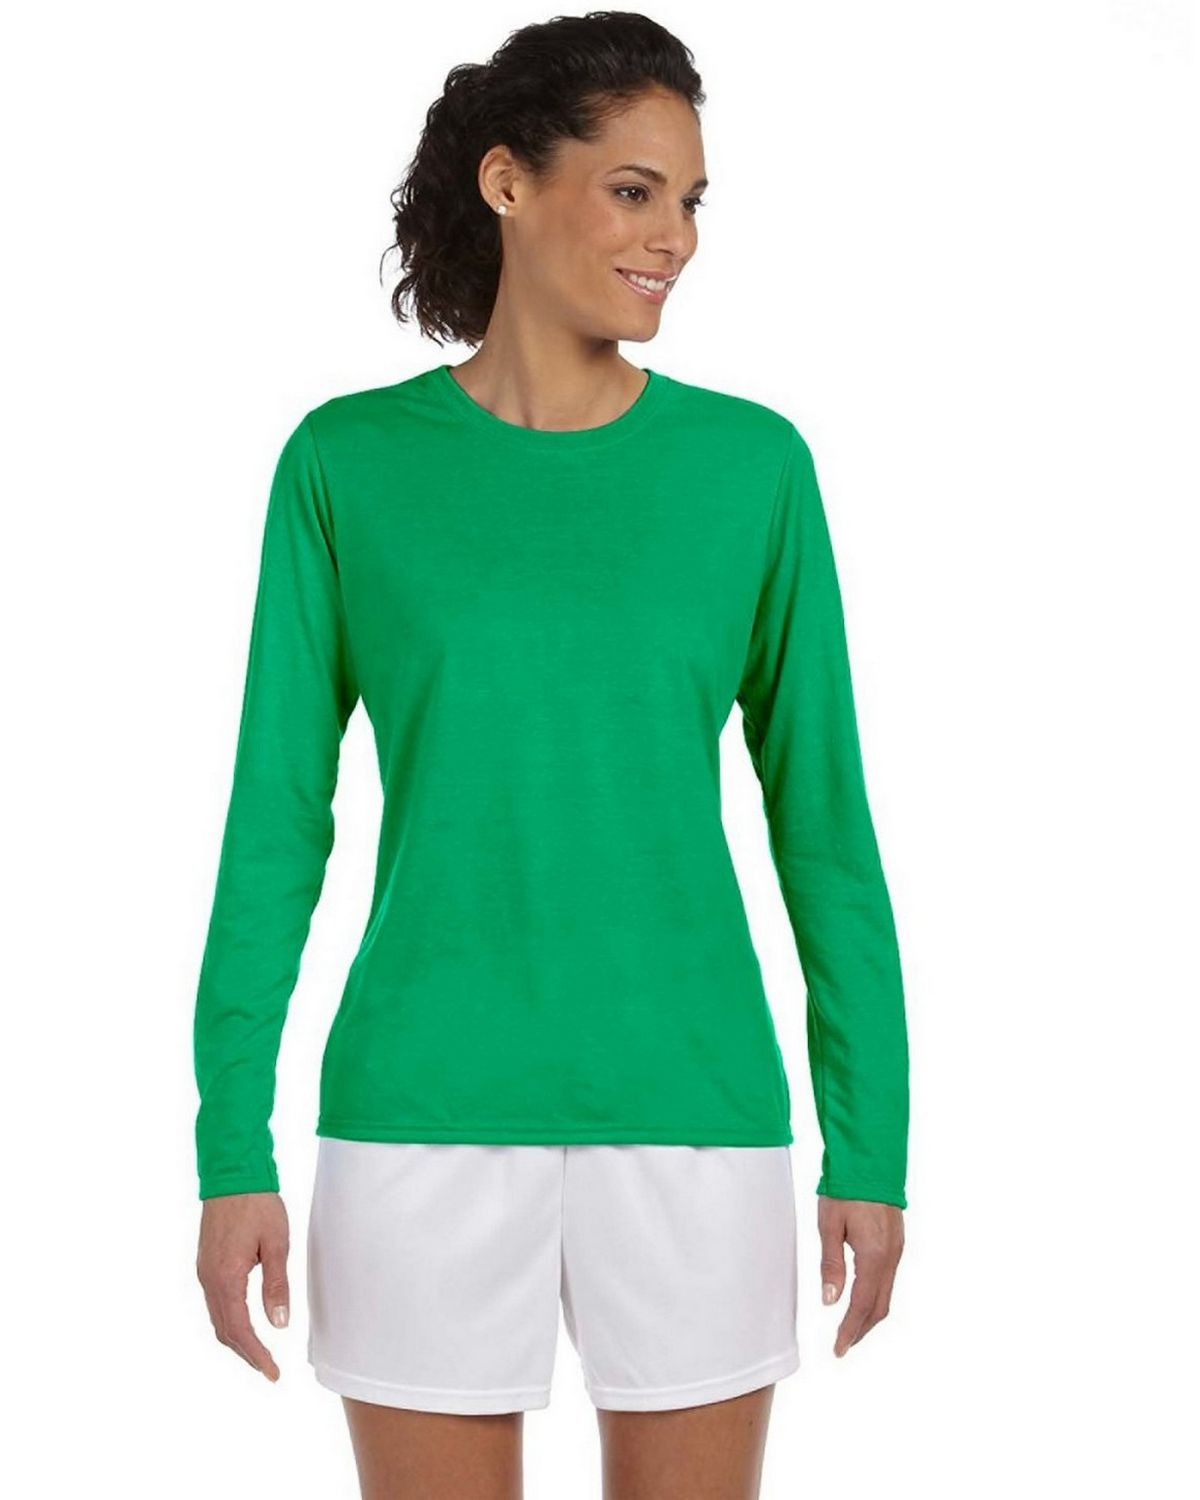 Gildan G424L Performance Long Sleeve T Shirt - White - S G424L